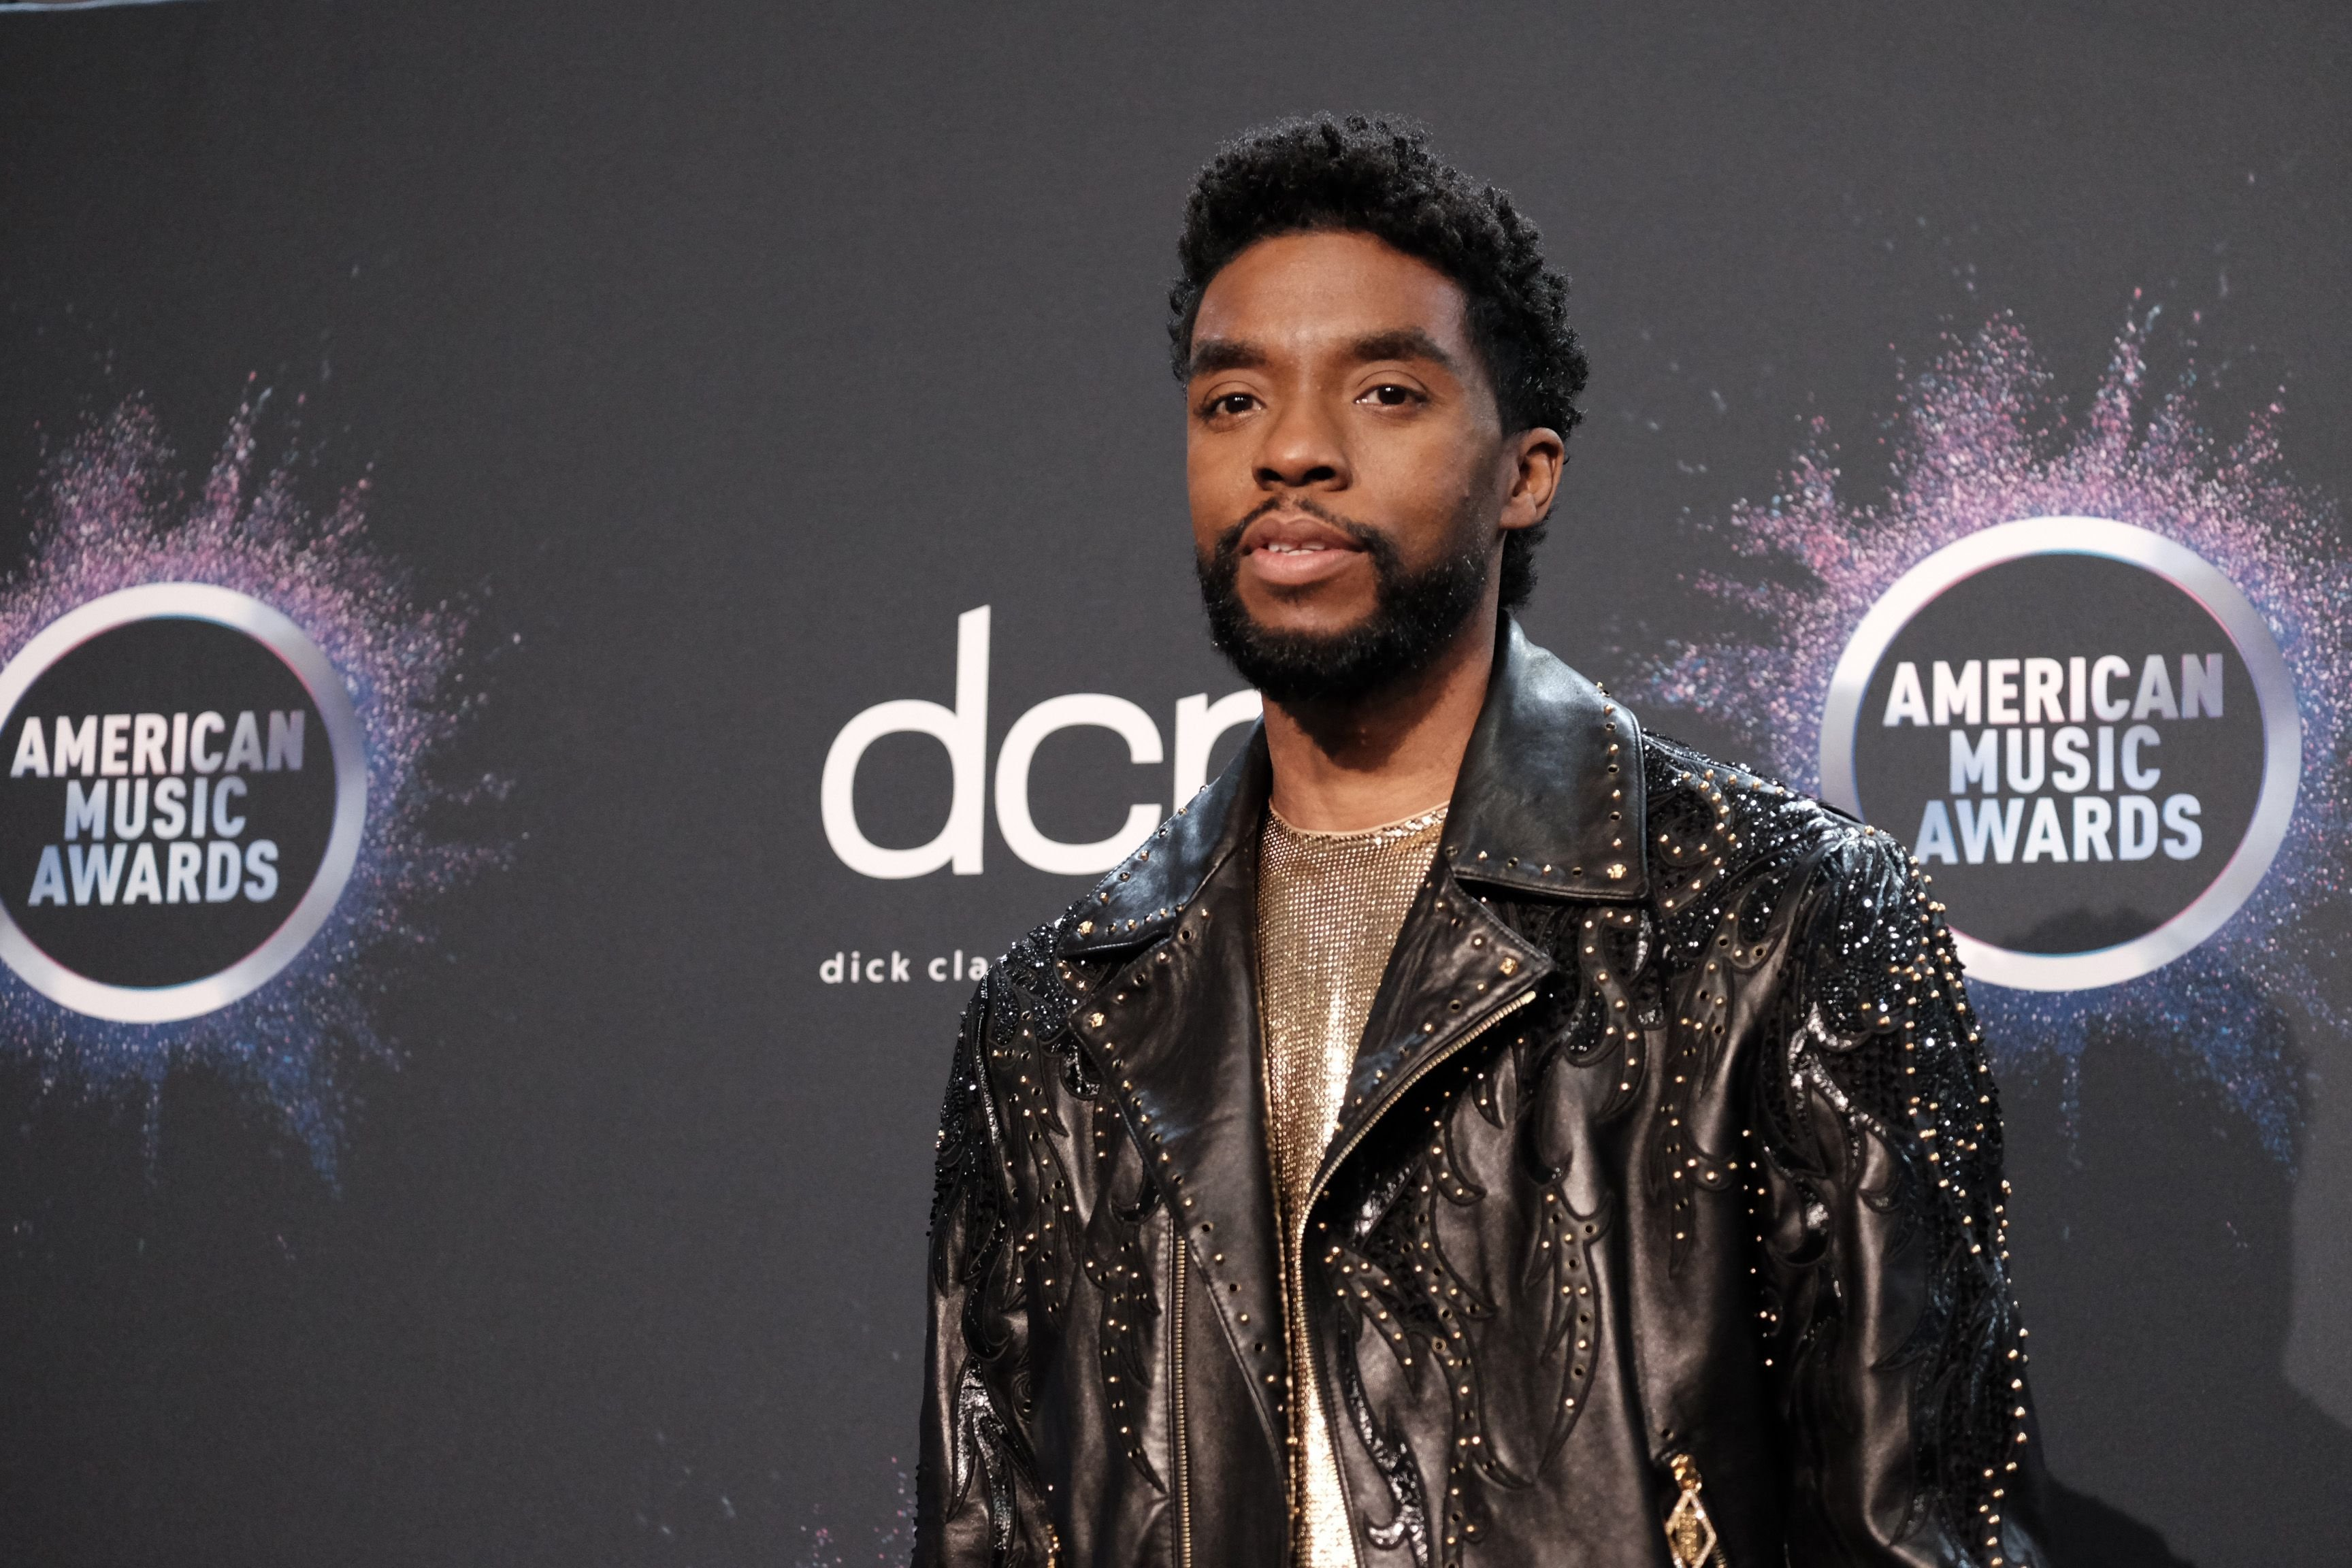 Chadwick Boseman during the 2019 American Music Awards at Microsoft Theater on November 24, 2019 in Los Angeles, California. | Source: Getty Images